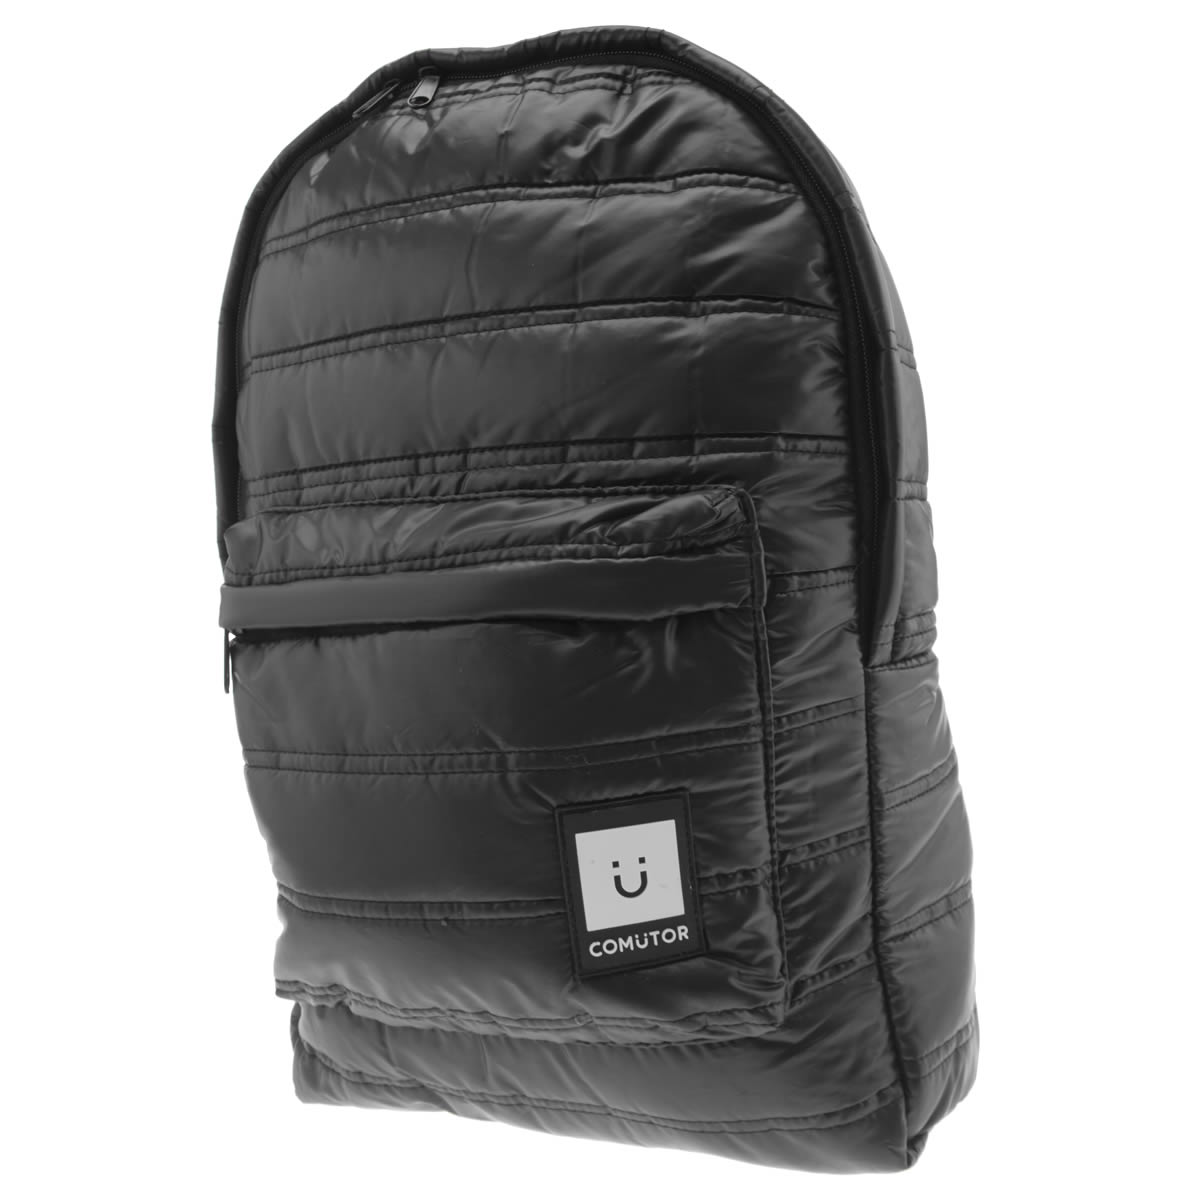 comutor Comutor Black 12 Hour Backpack Accessory